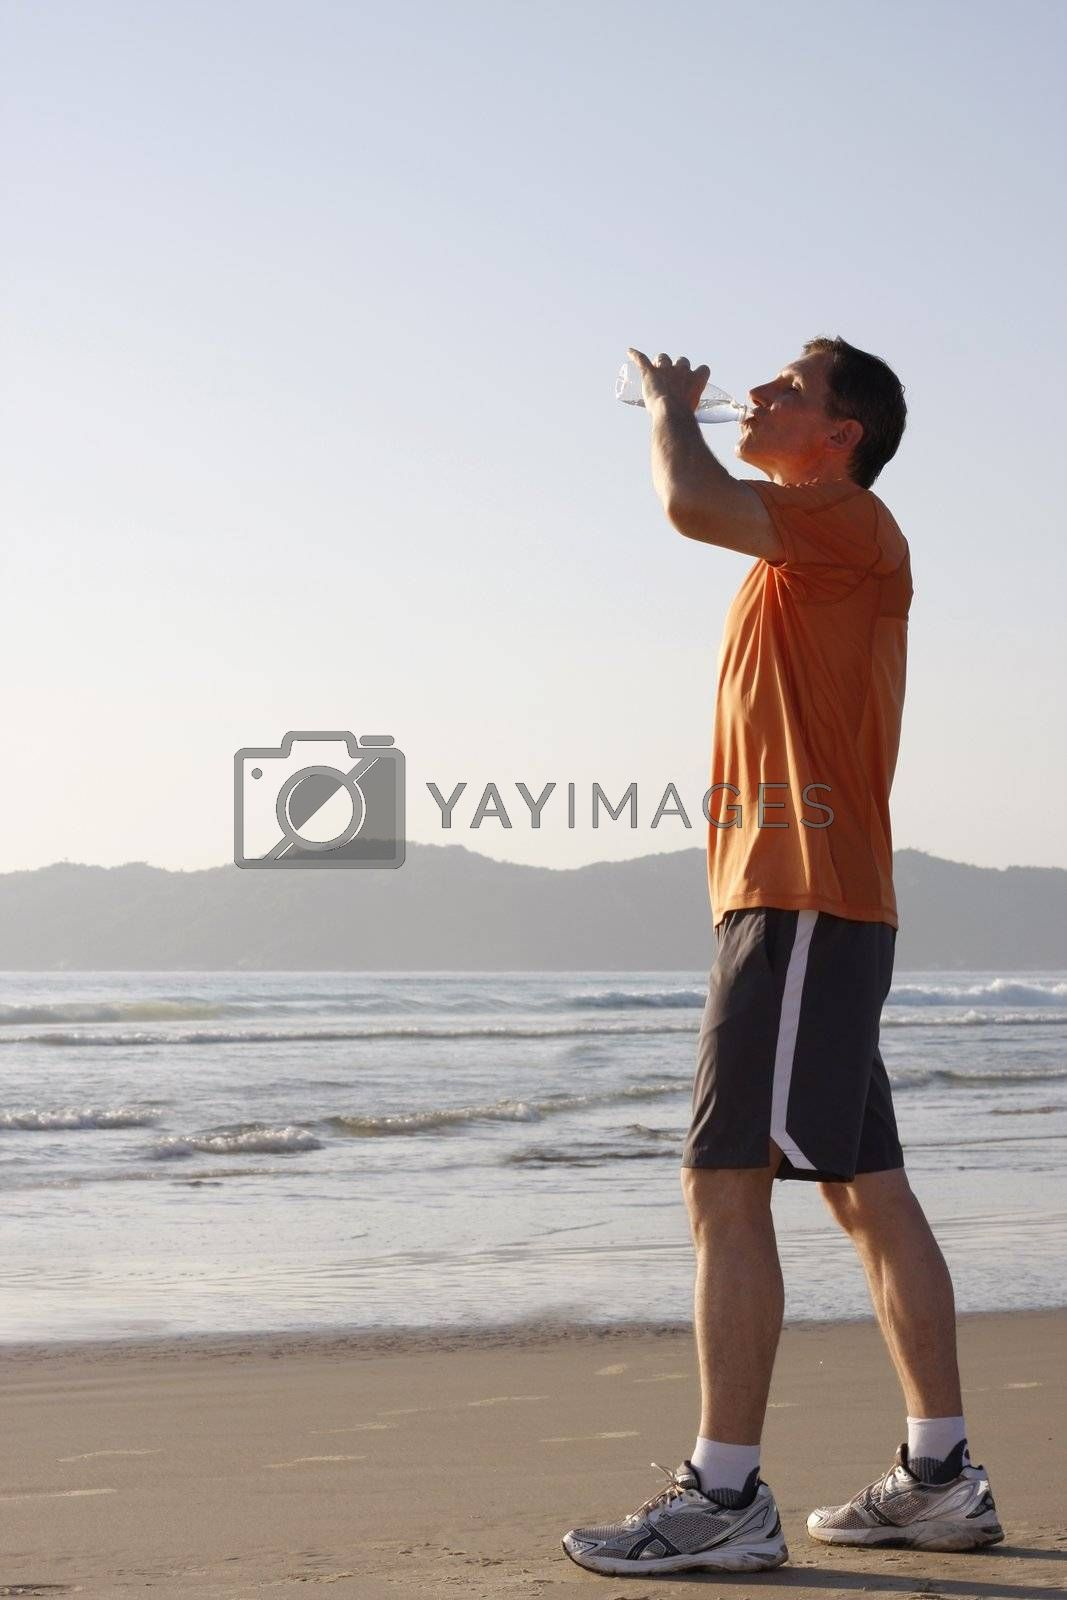 Runner drinking water on a beach